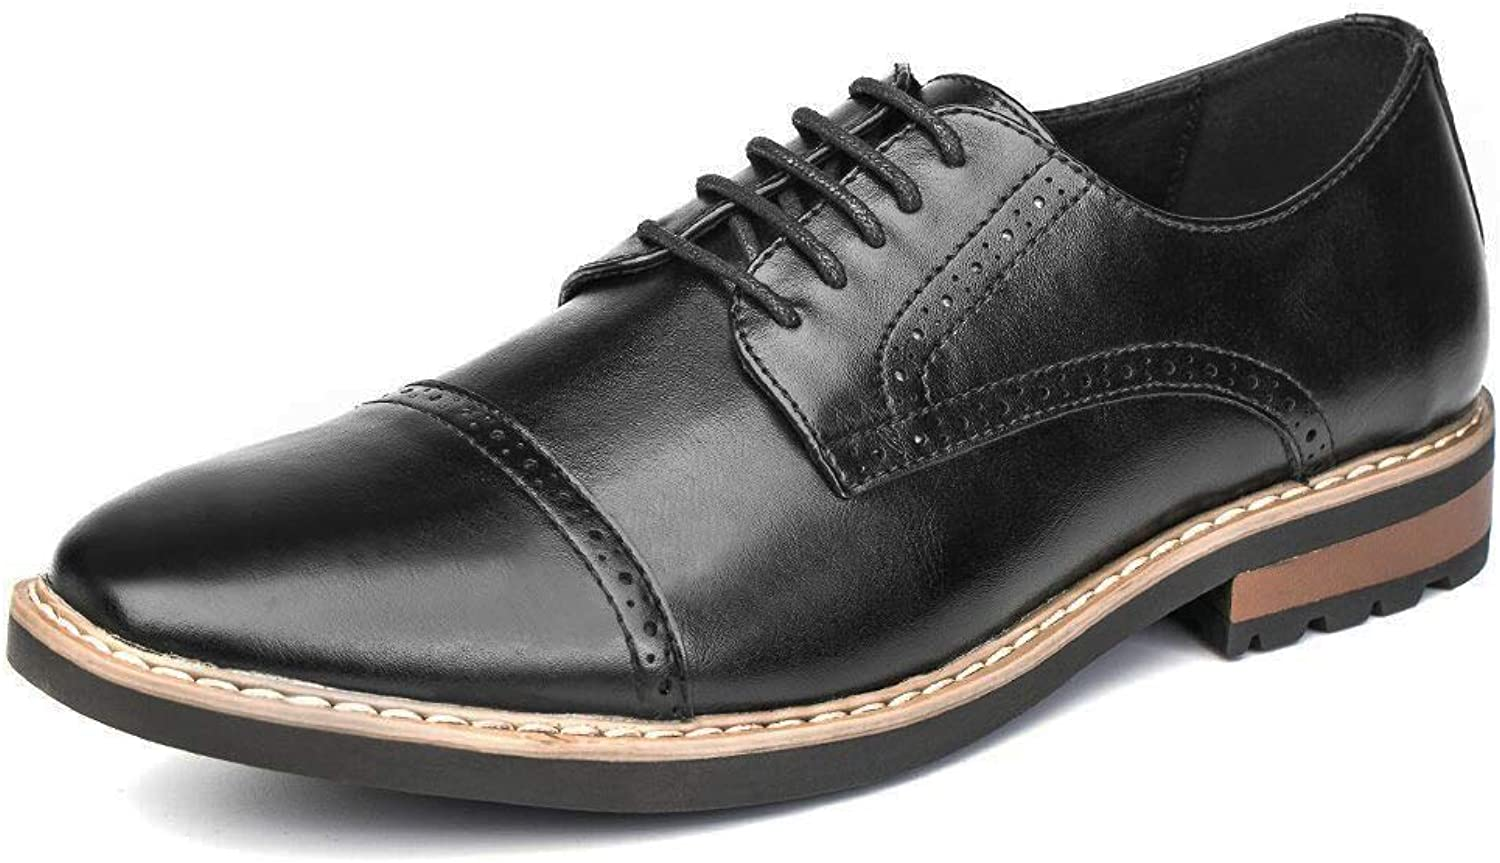 GOLAIMAN Size 6-14 Oxford shoes Men's Uniform Dress shoes Work shoes Formal shoes Low-Heel Lace up Derbys shoes